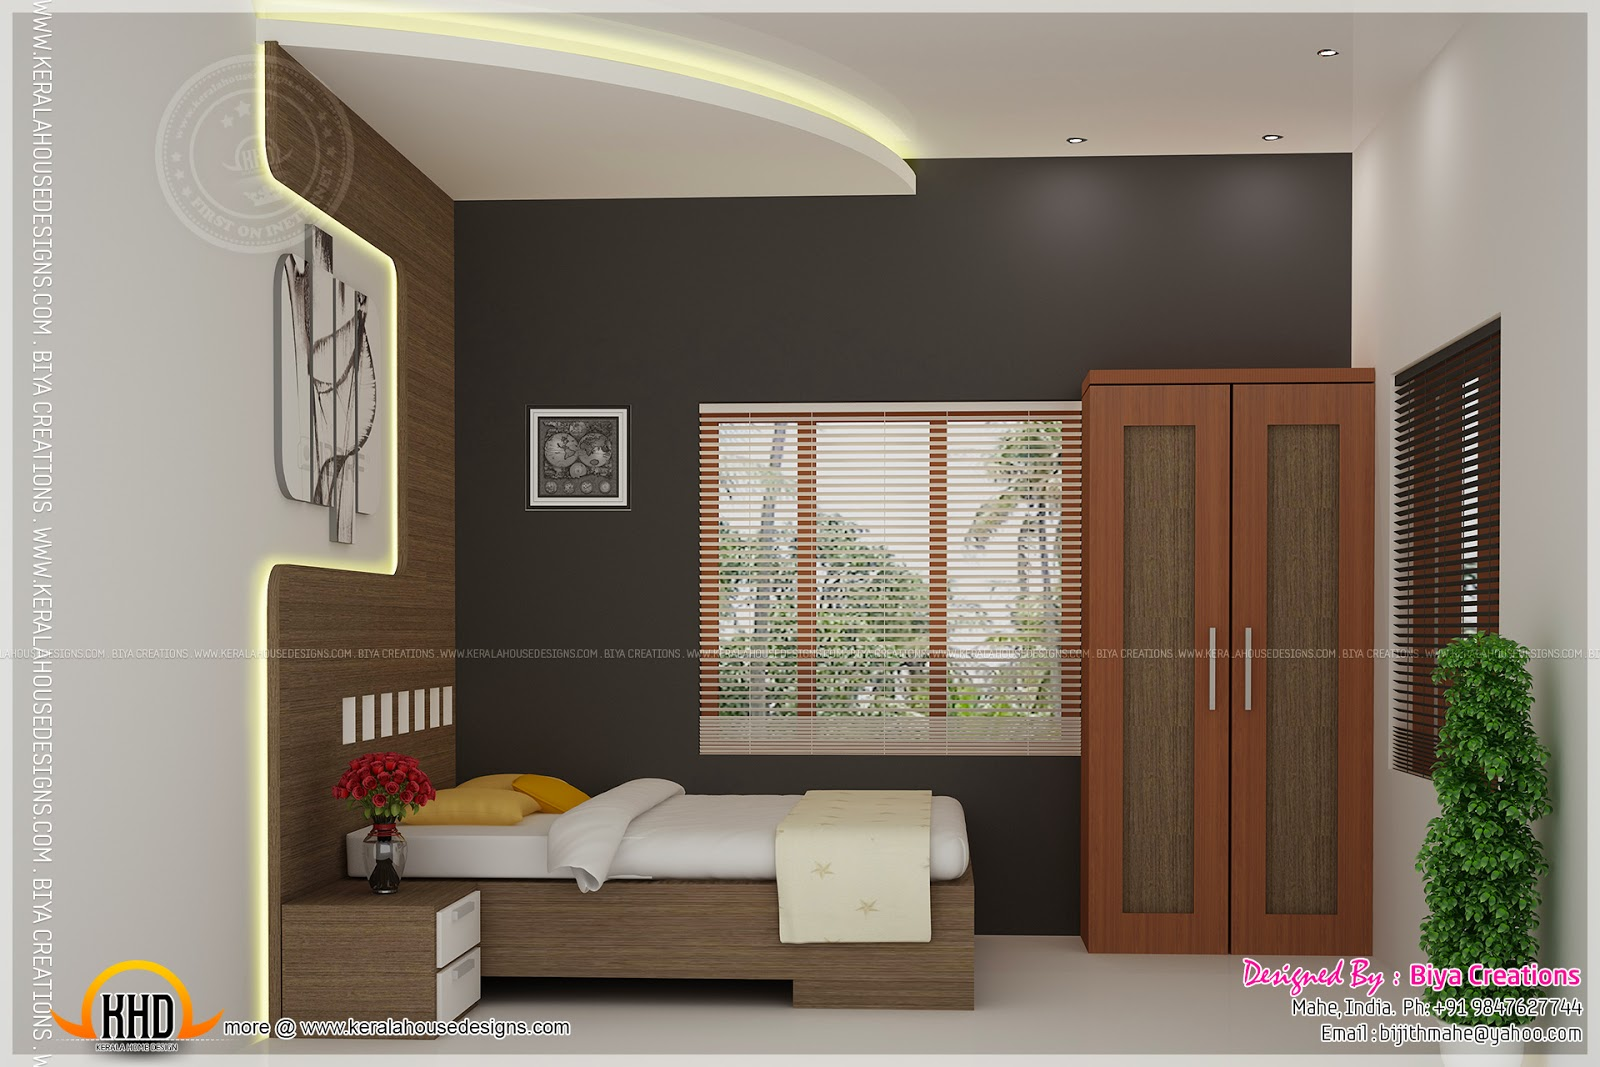 Bedroom kid bedroom and kitchen interior kerala home for Home plans with interior photos